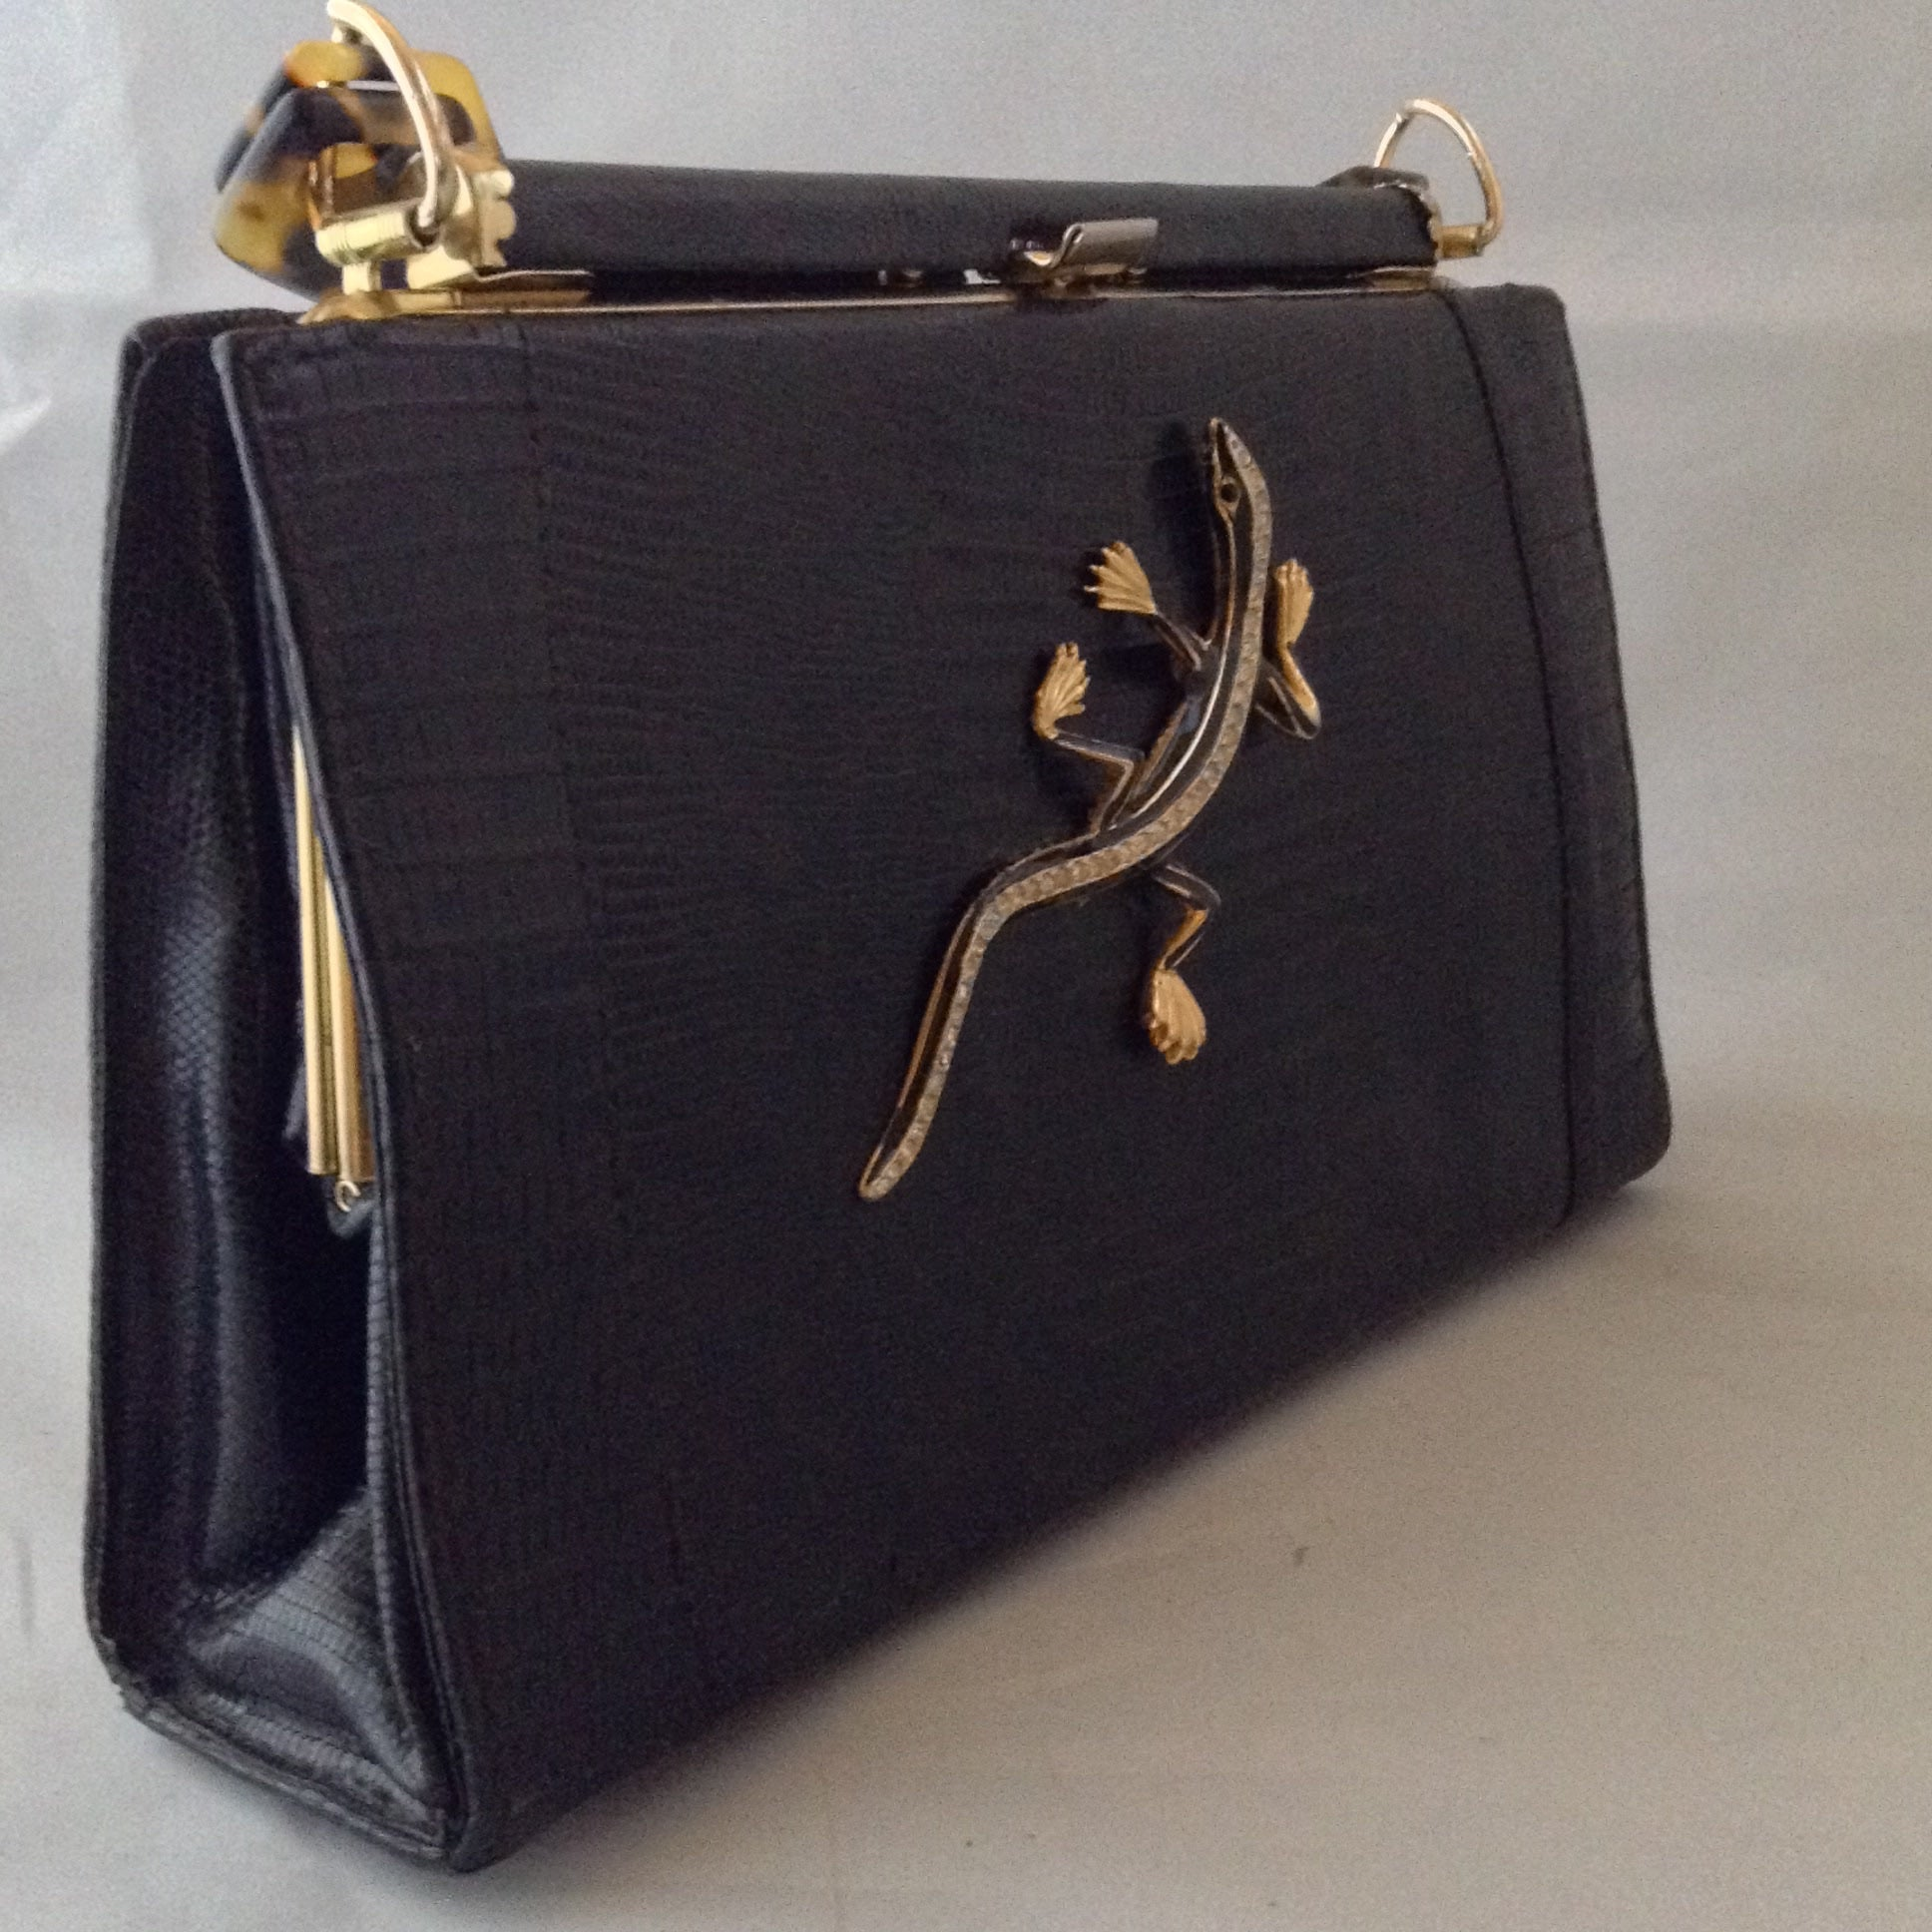 "Black On Black Lizards. Classic black lizard vintage purse with perfect proportions sports a perfect black vintage lizard and a vintage lucite tortoise handle. Perfectly perfect for every occasion.   Dimensions - 7"" Height; 10"" Width; 9-1/2"" Length with handles"